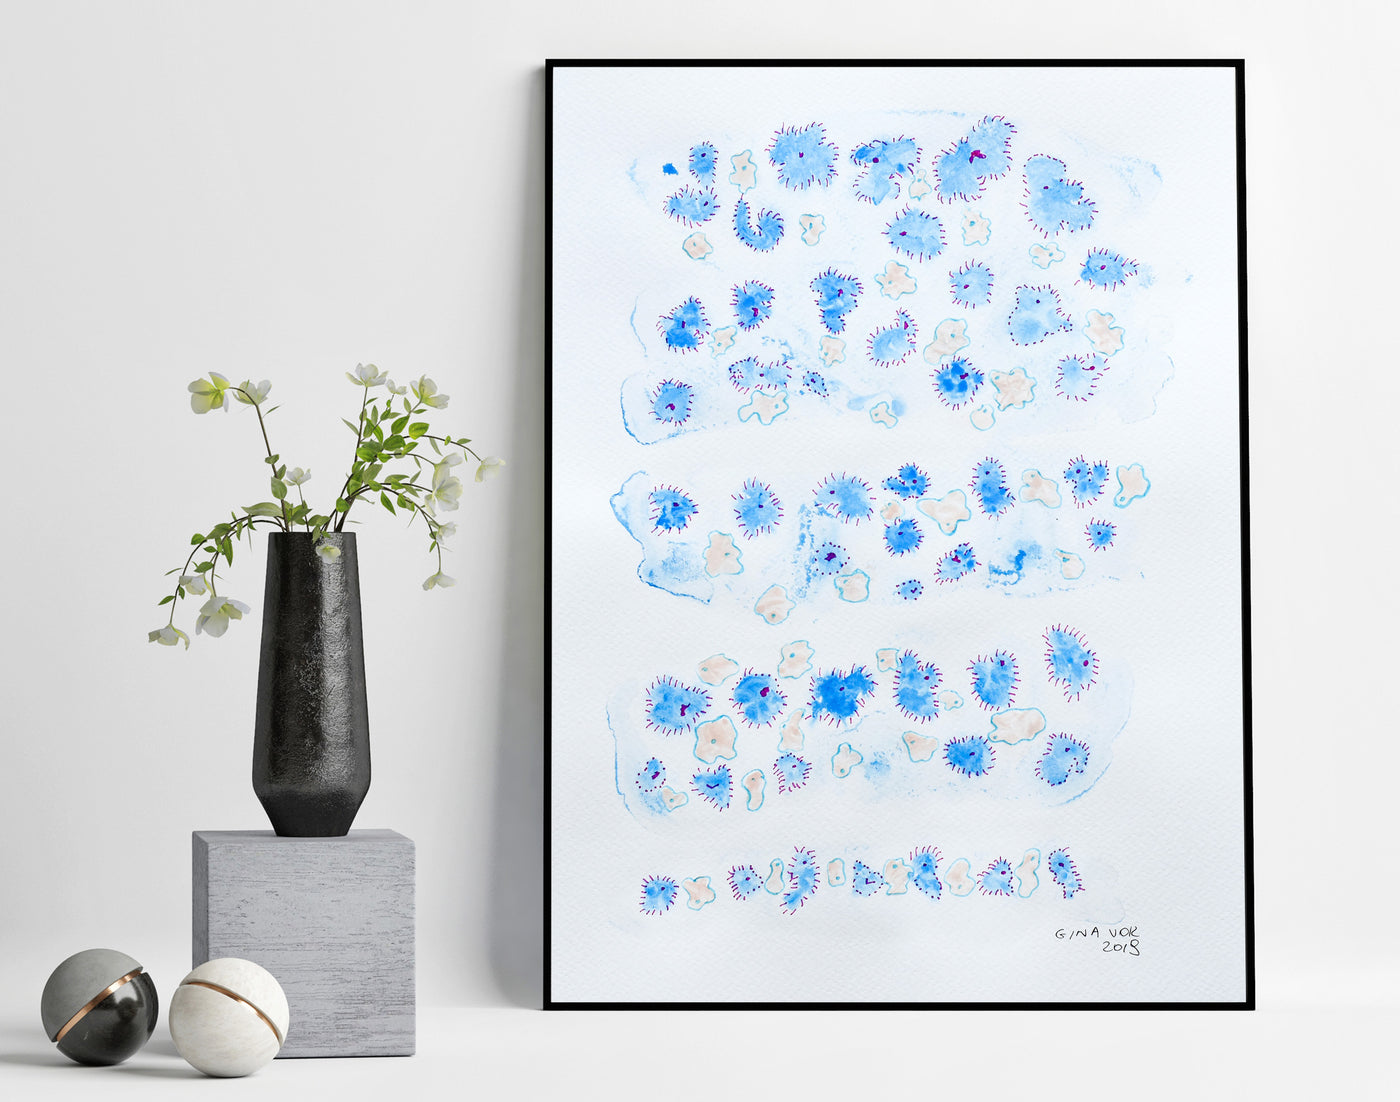 Abstract watercolour art for sale